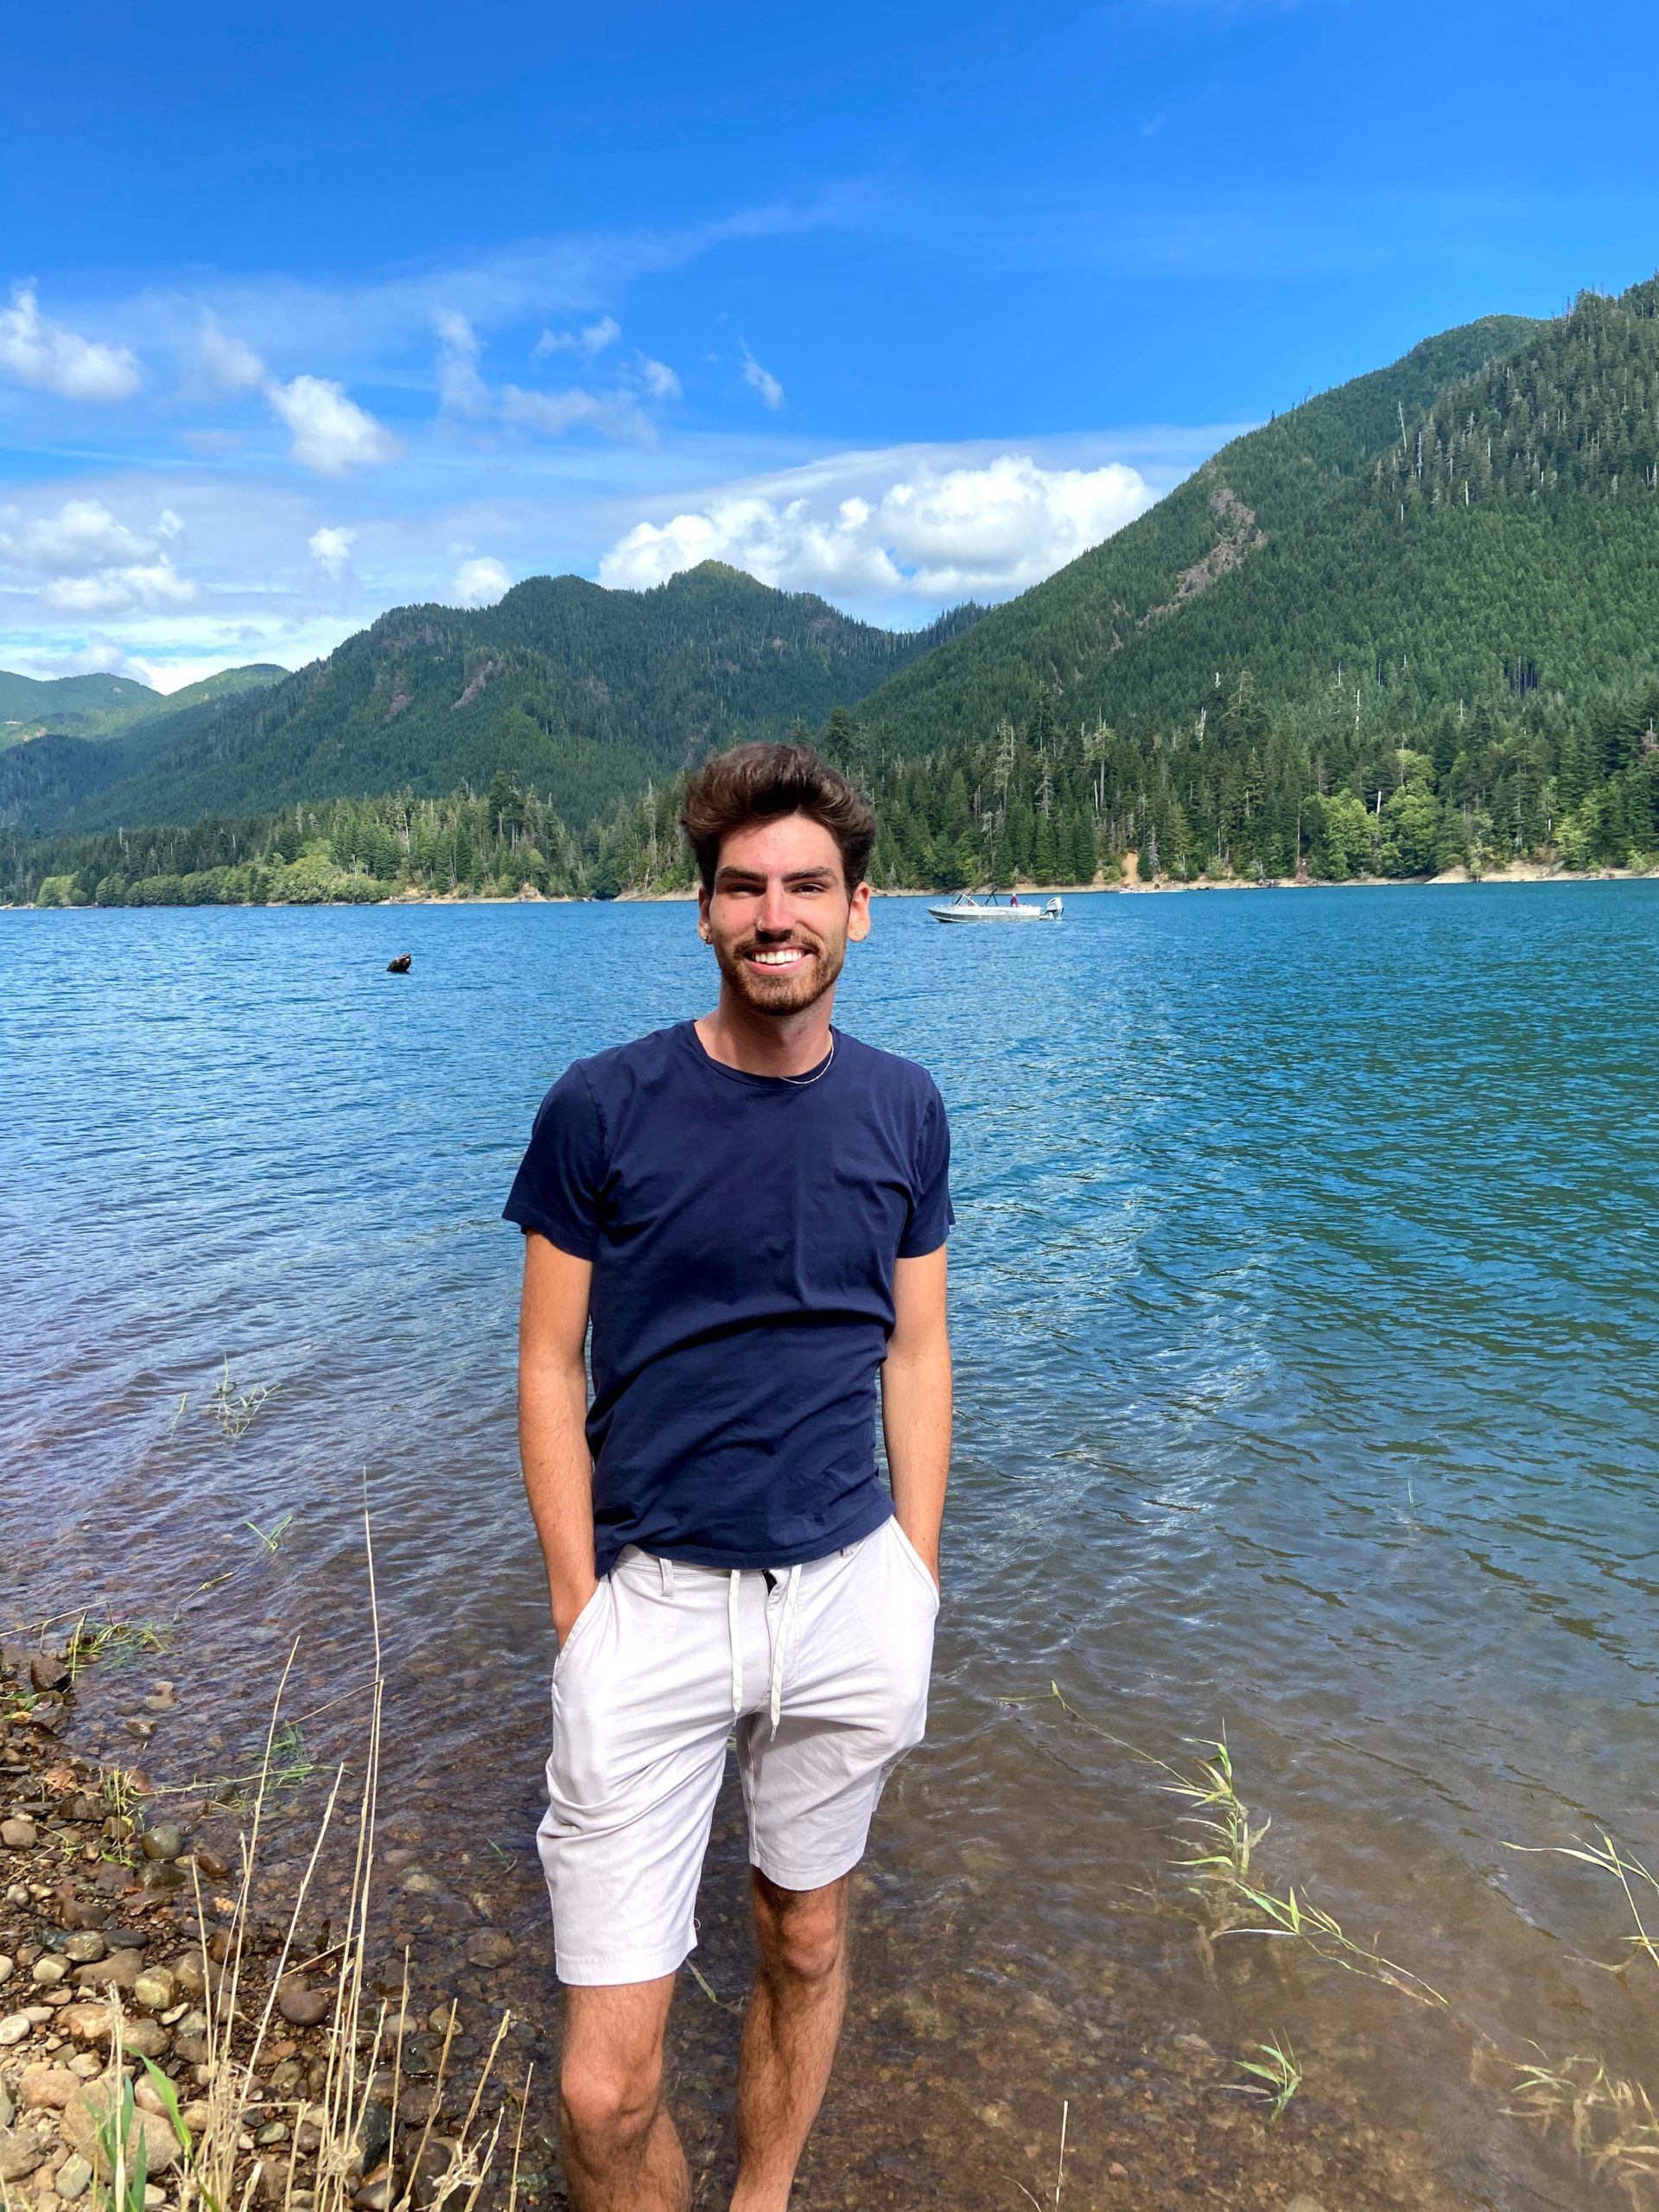 Jamison Siebart in front of lake and mountains, wide shot